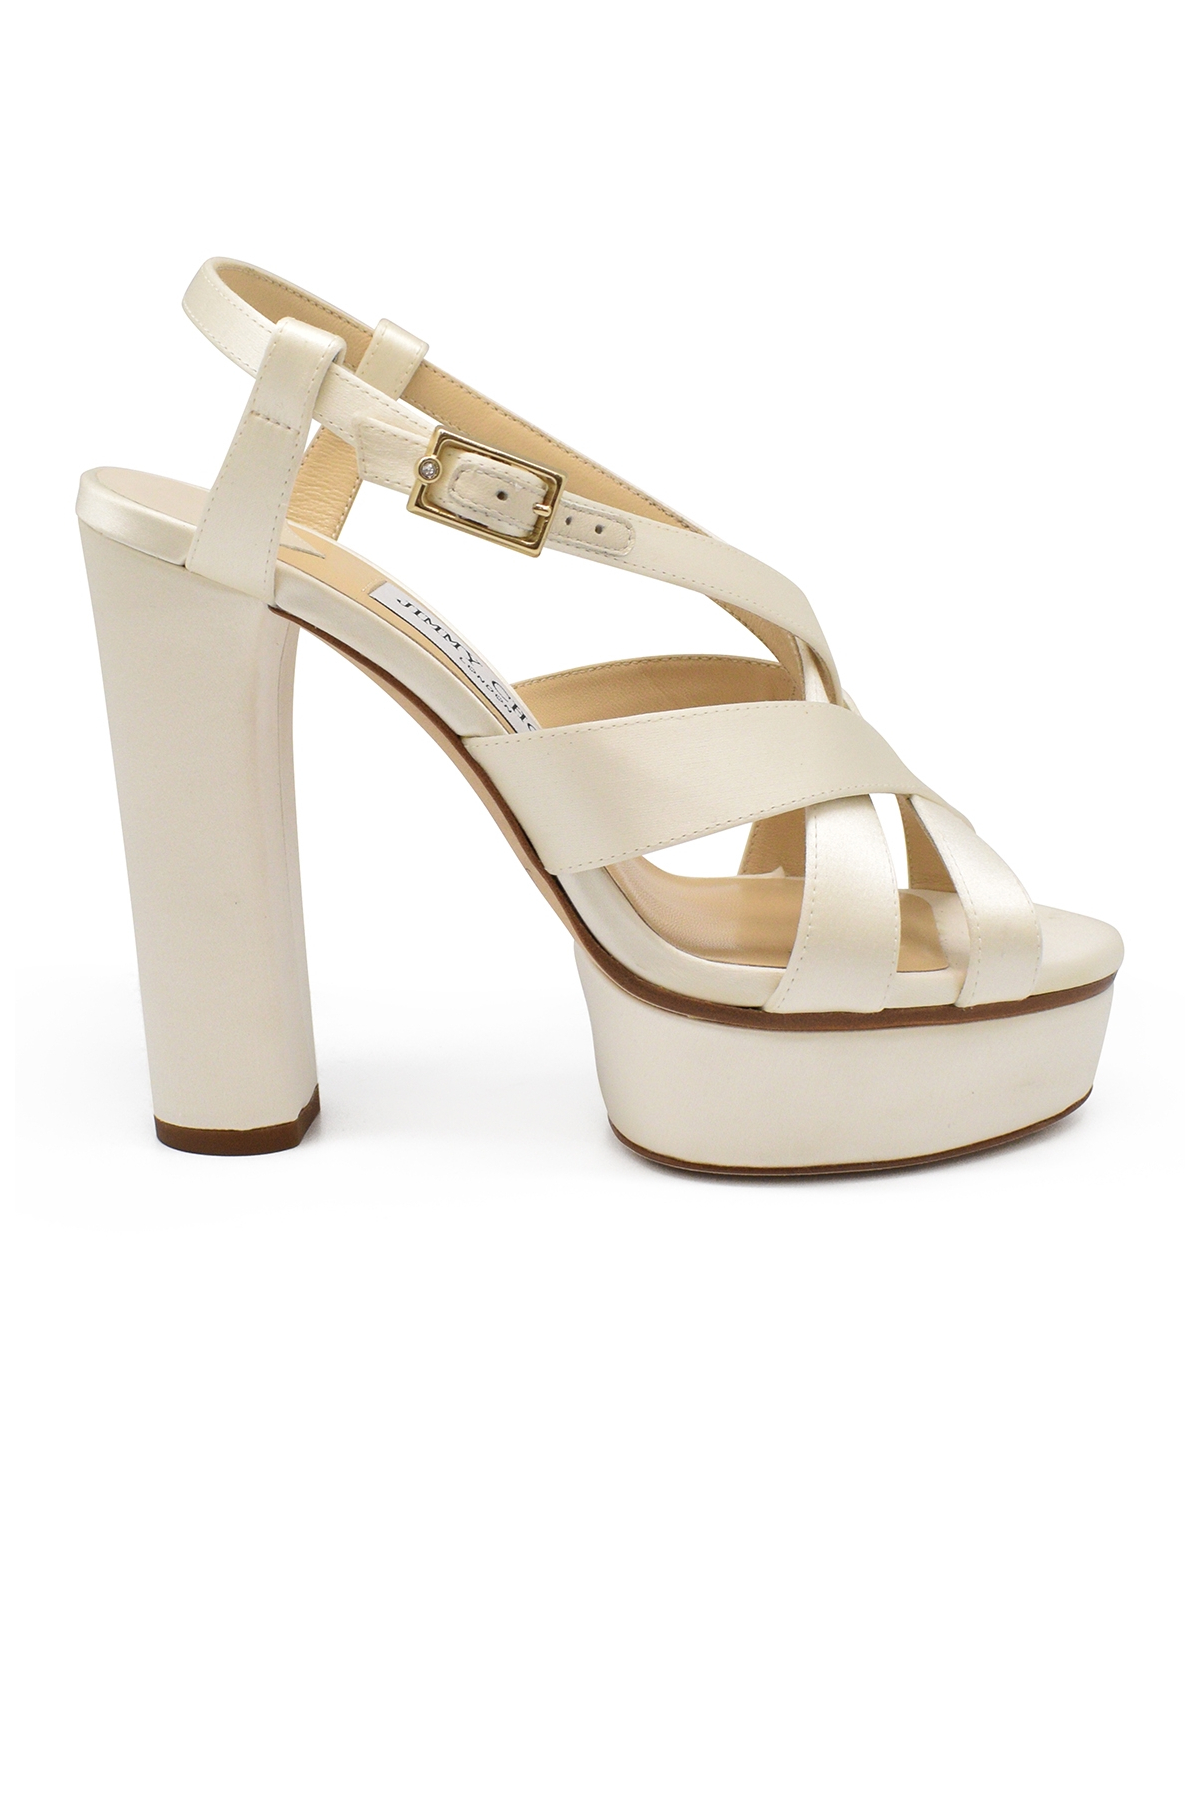 Jimmy ChoO Caress 125 high sandals in cream color satin